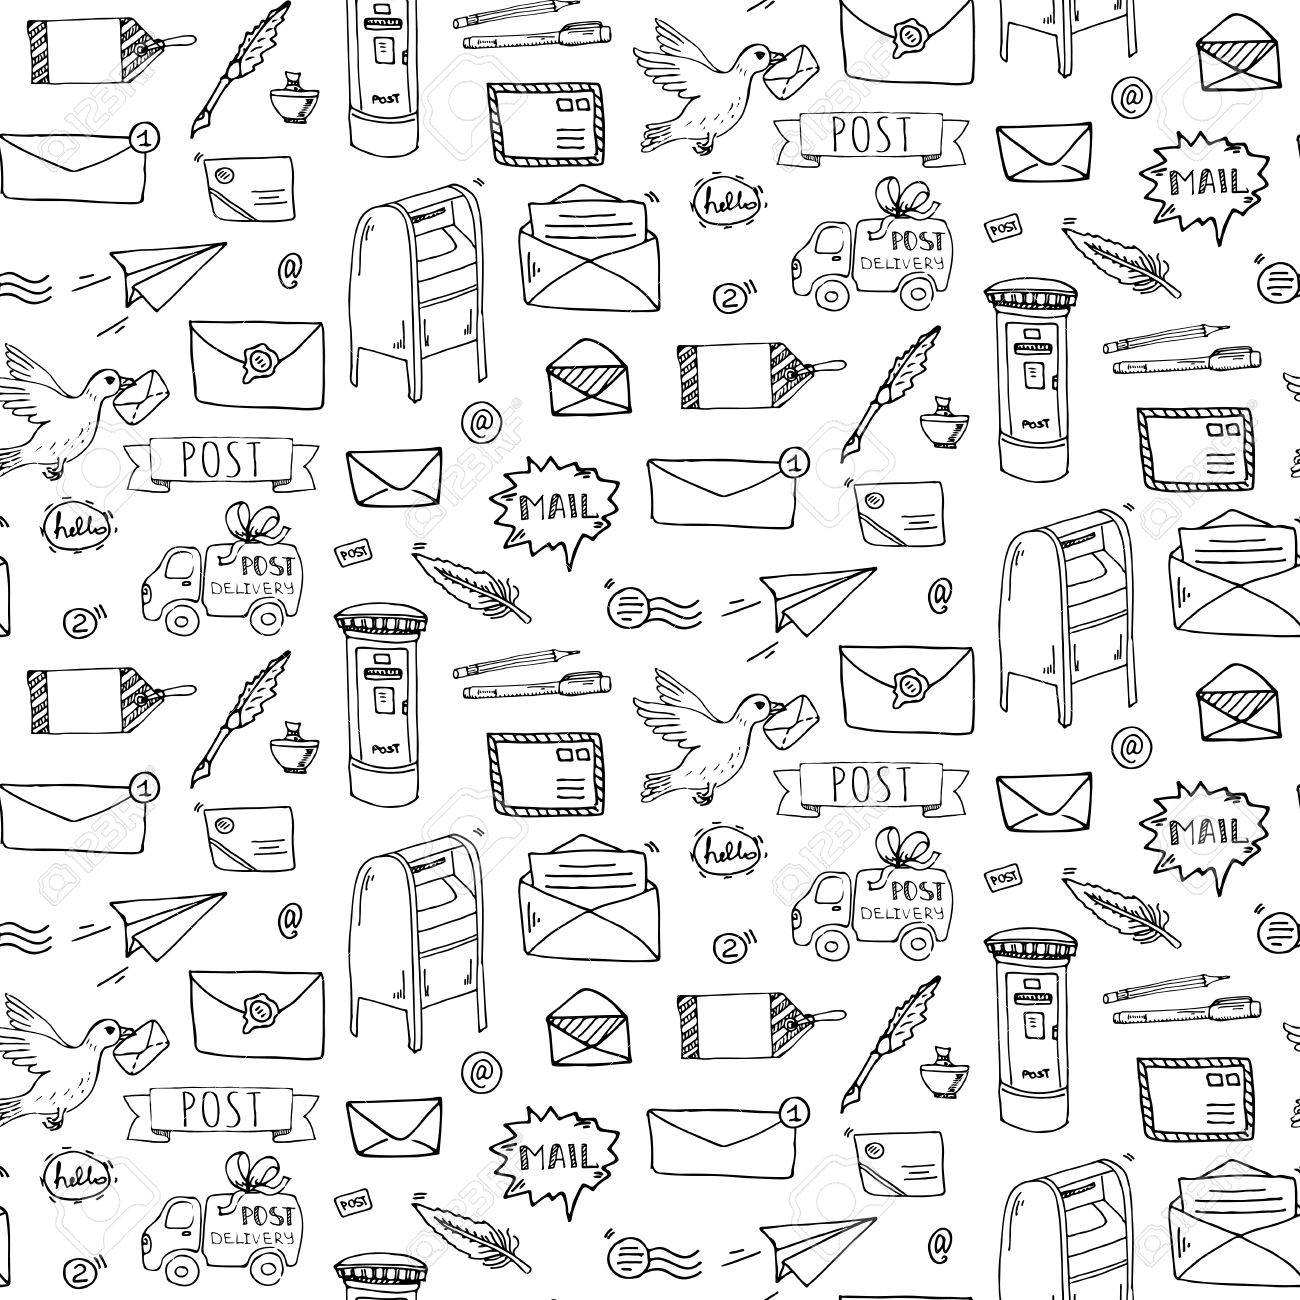 Seamless pattern hand drawn doodle postal elements icon set seamless pattern hand drawn doodle postal elements icon set vector illustration isolated post symbols spiritdancerdesigns Images